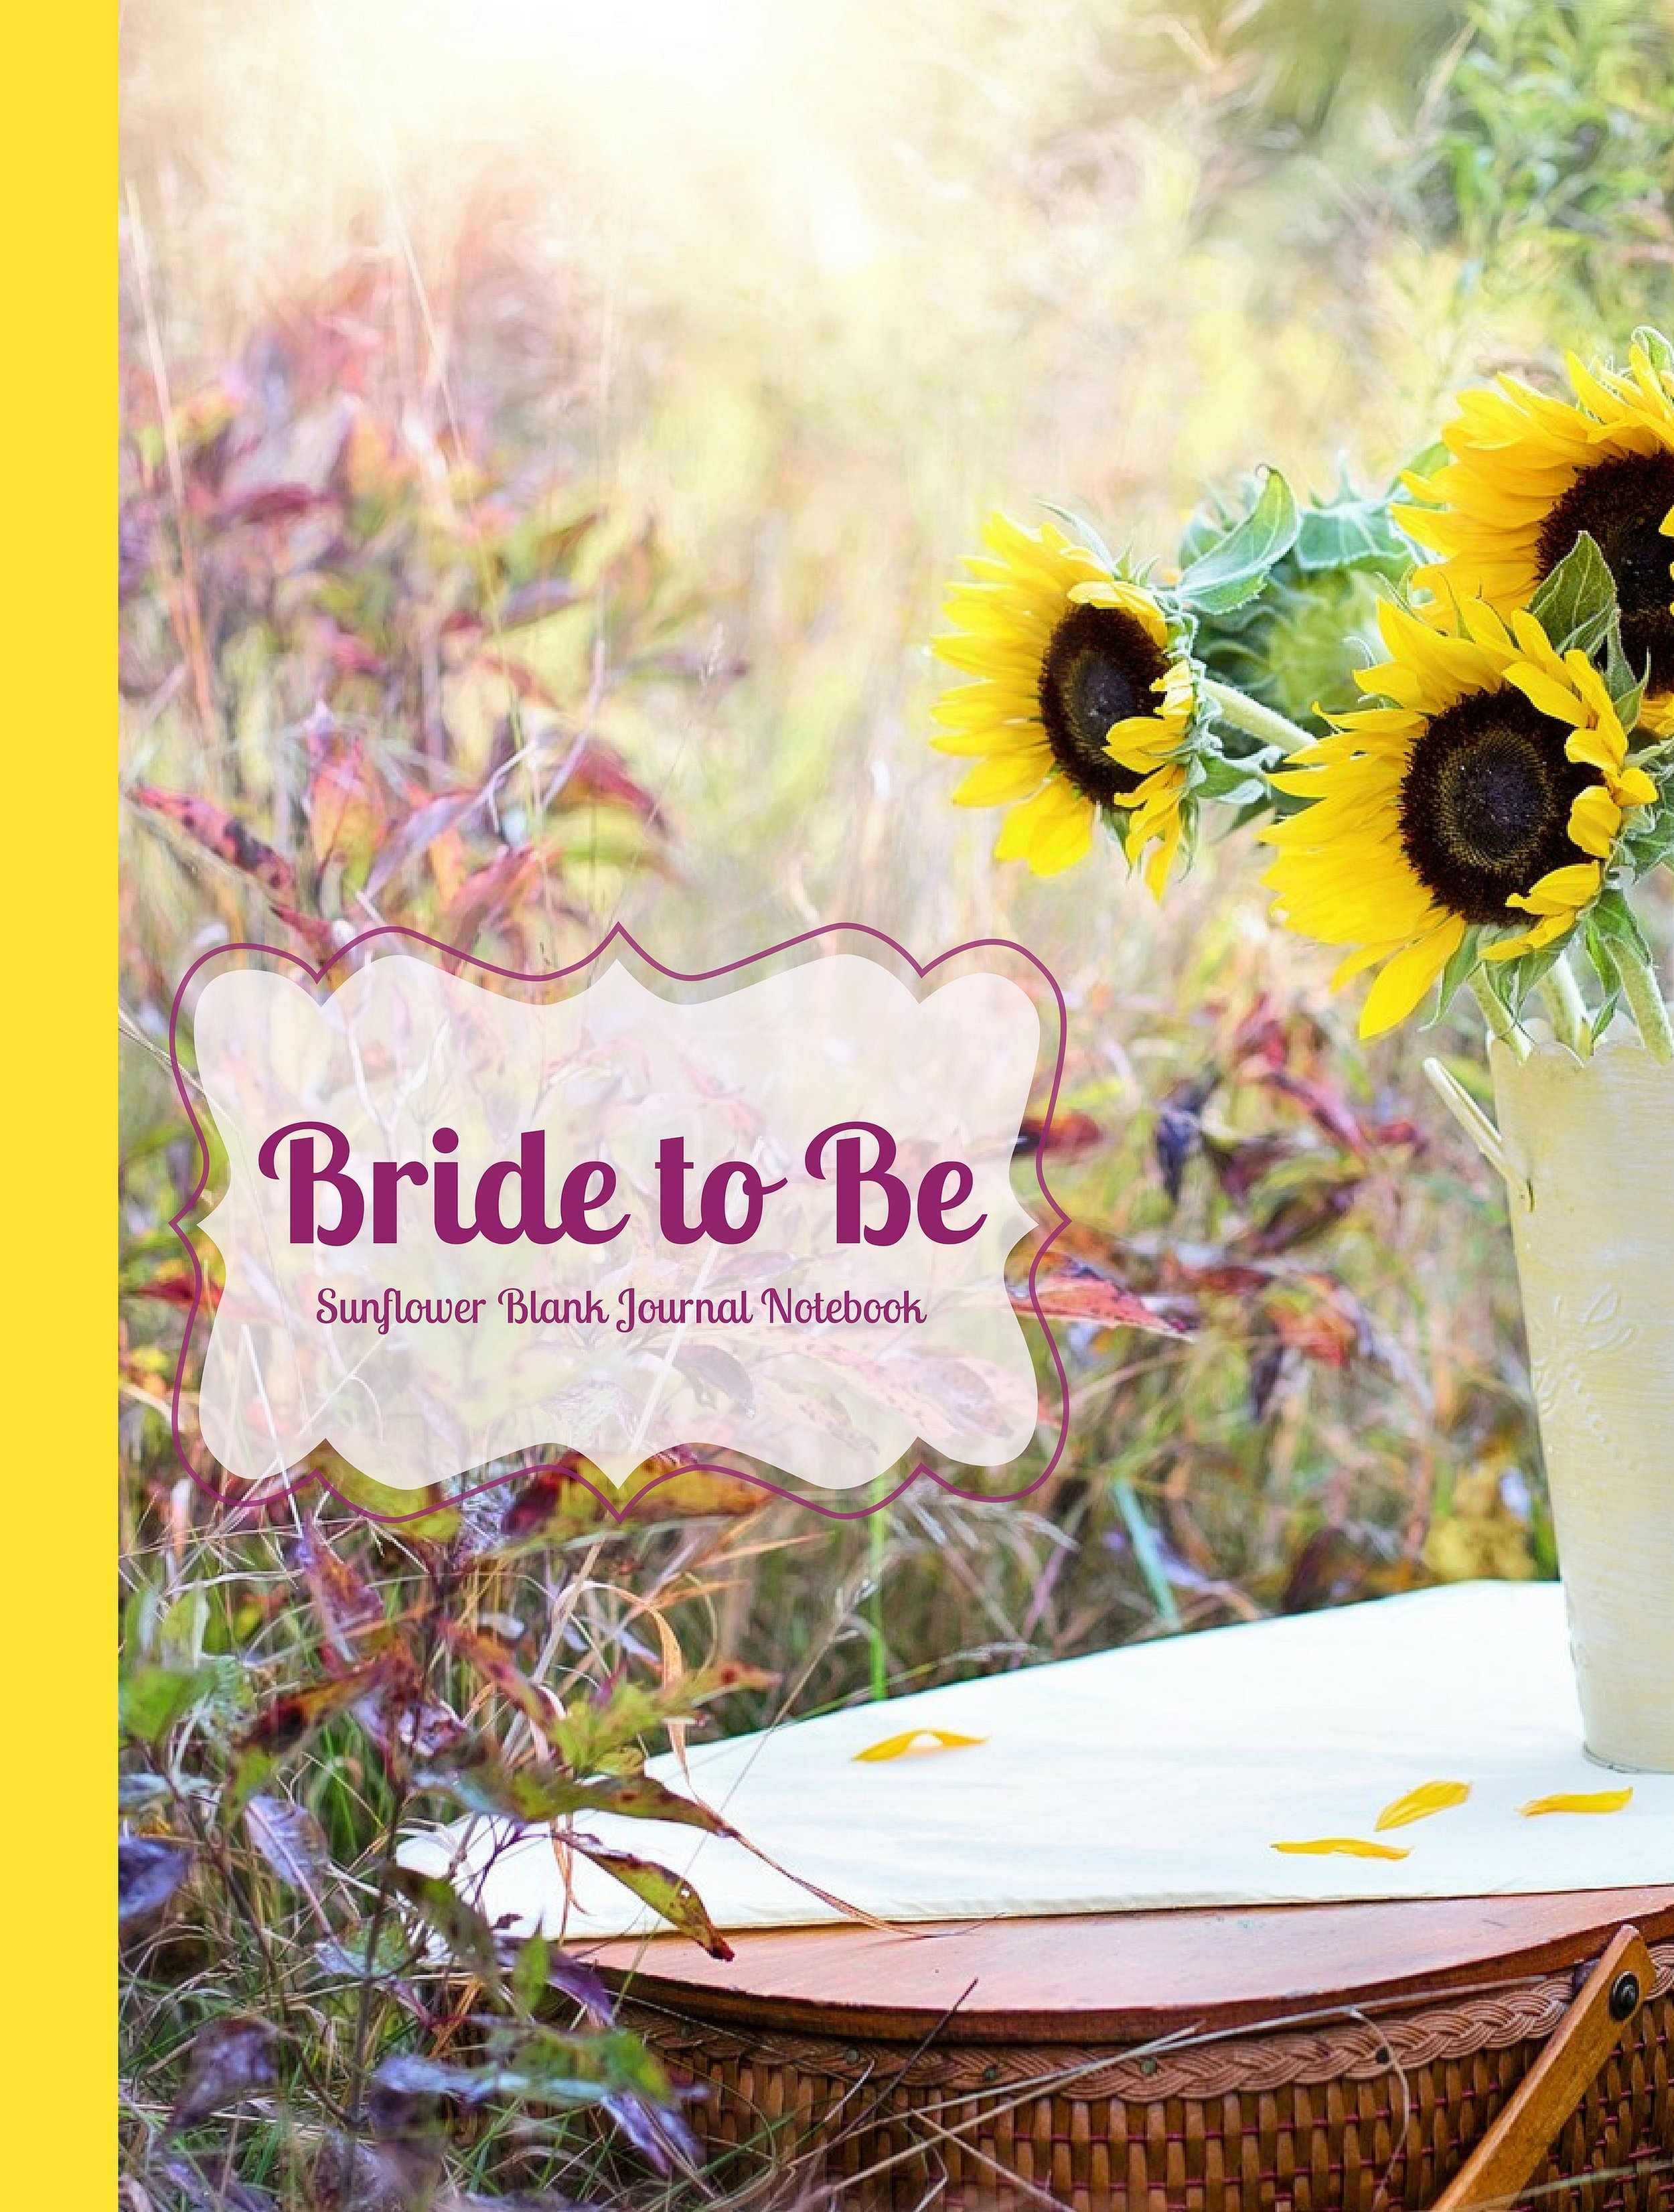 Bride to Be Sunflower Blank Journal